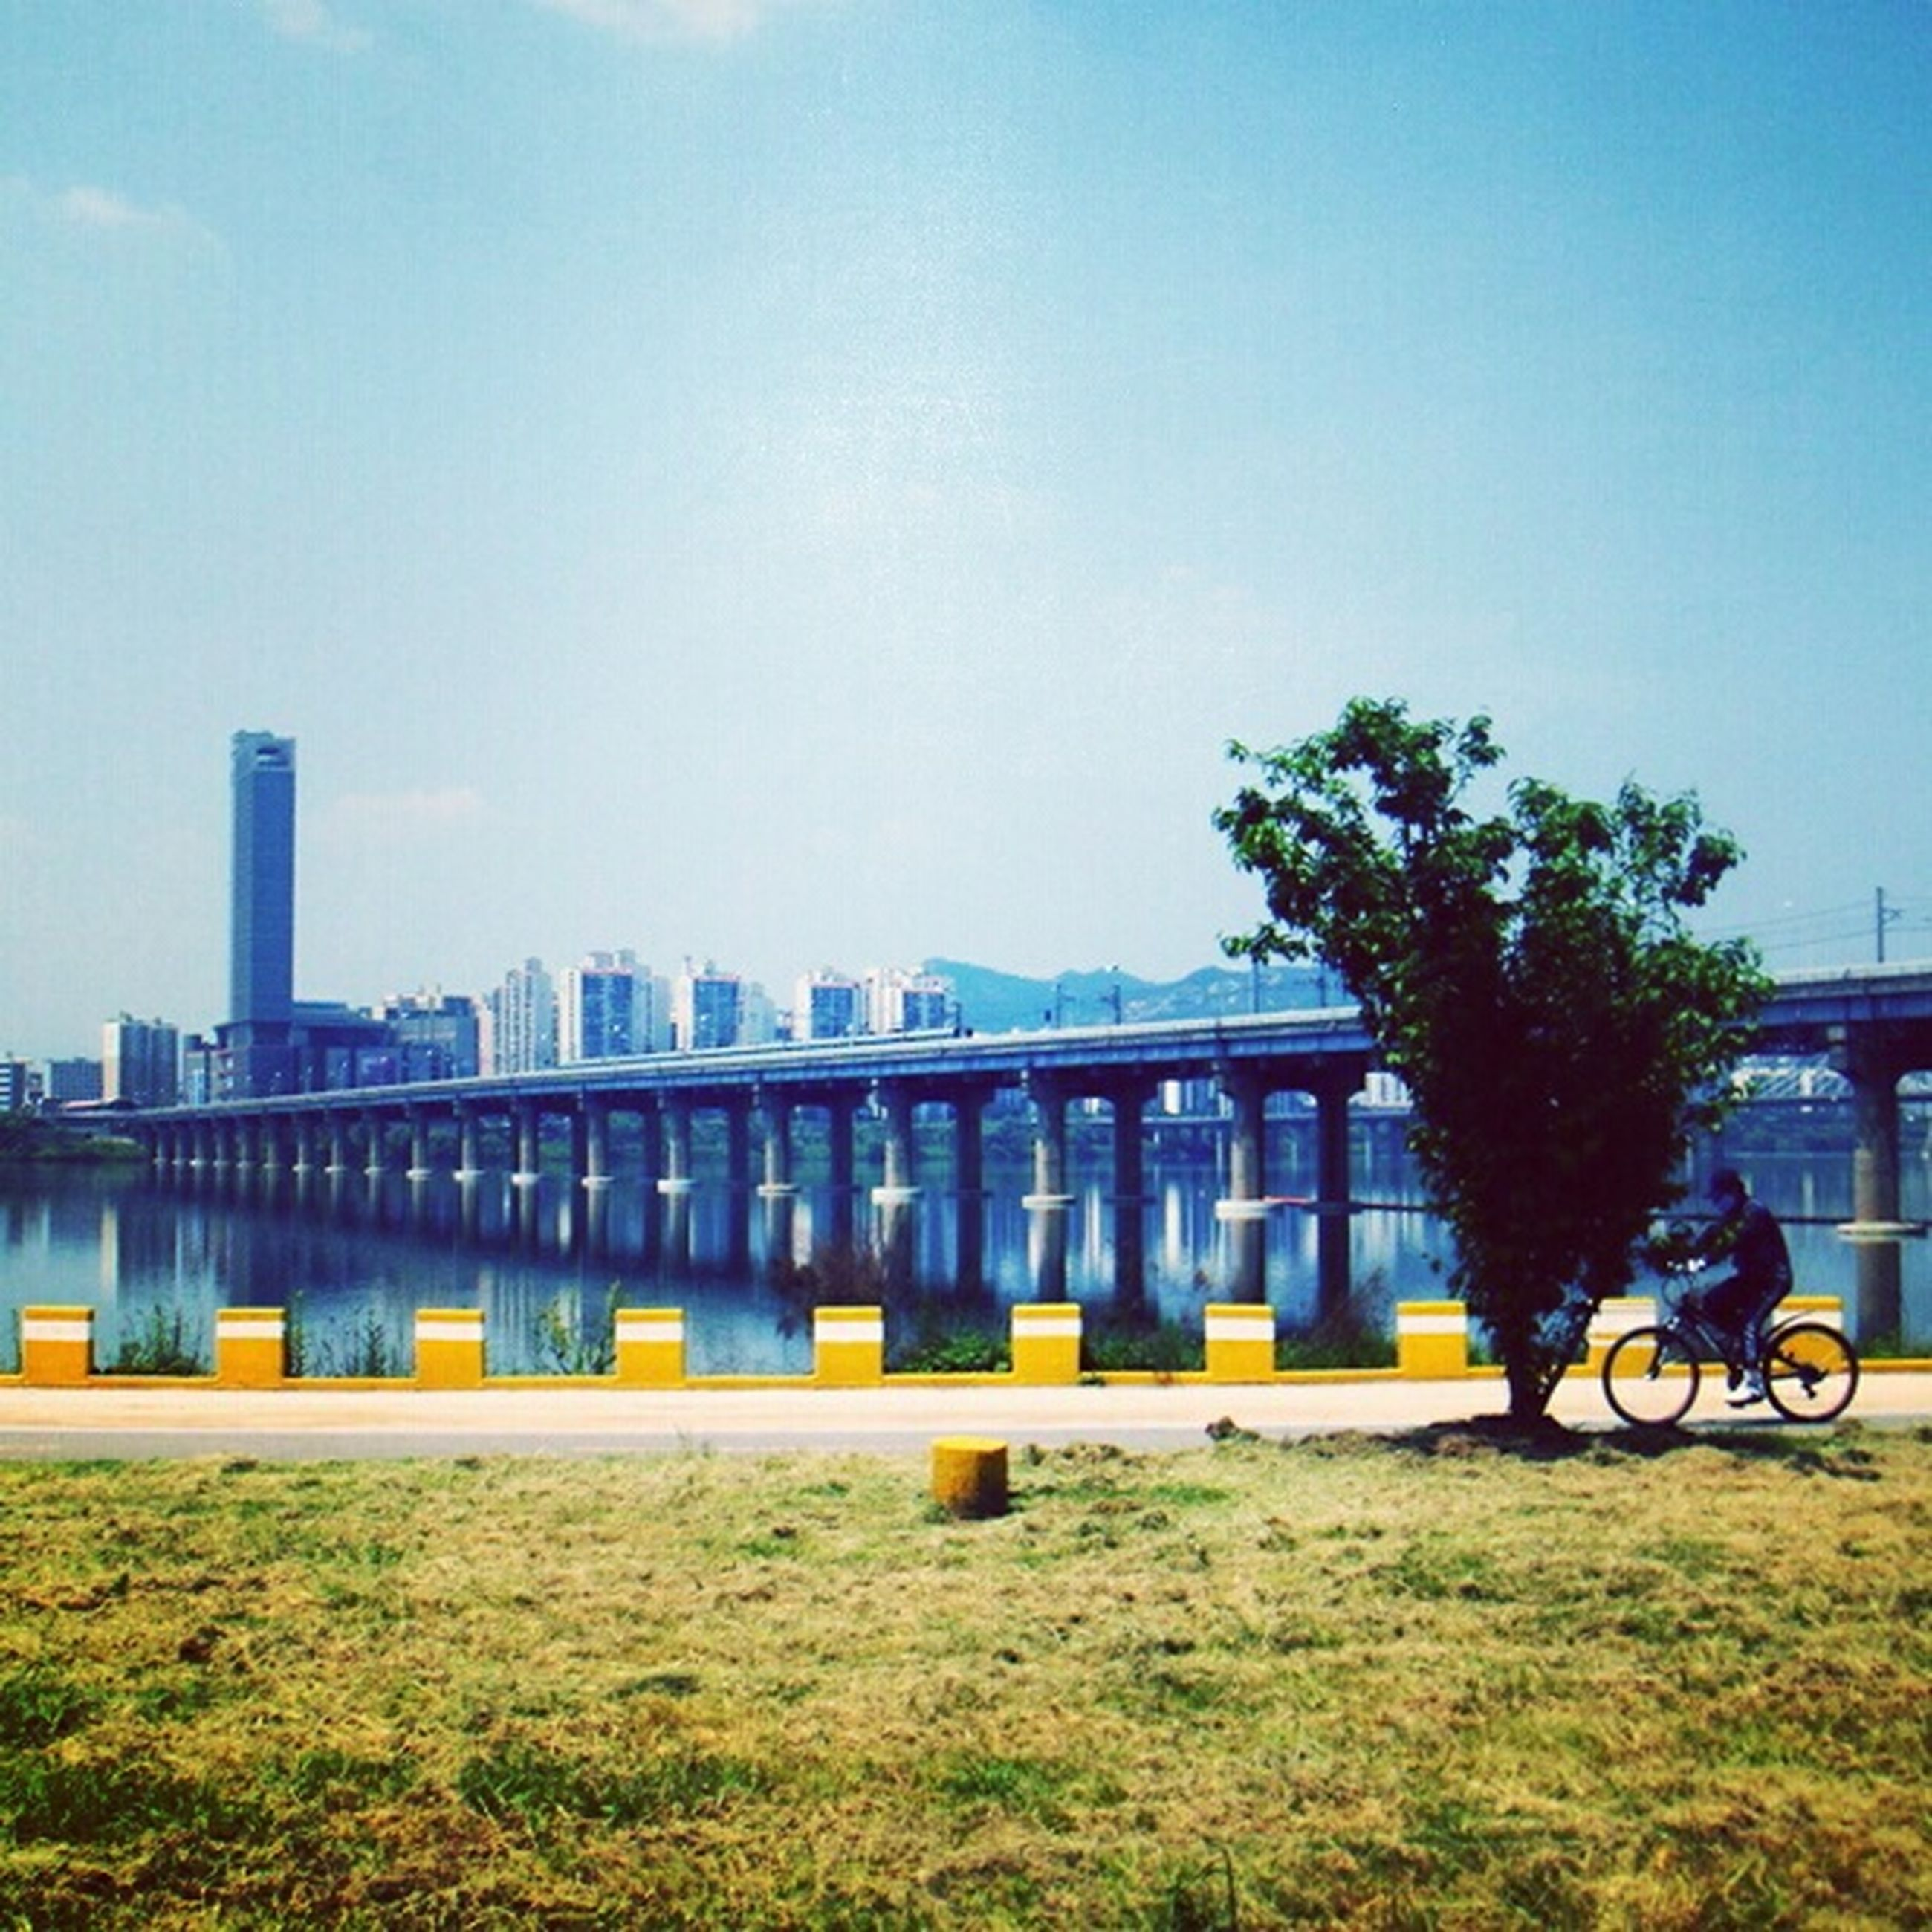 architecture, built structure, transportation, bicycle, clear sky, building exterior, copy space, land vehicle, mode of transport, bridge - man made structure, city, grass, tree, sky, railing, connection, river, incidental people, outdoors, blue